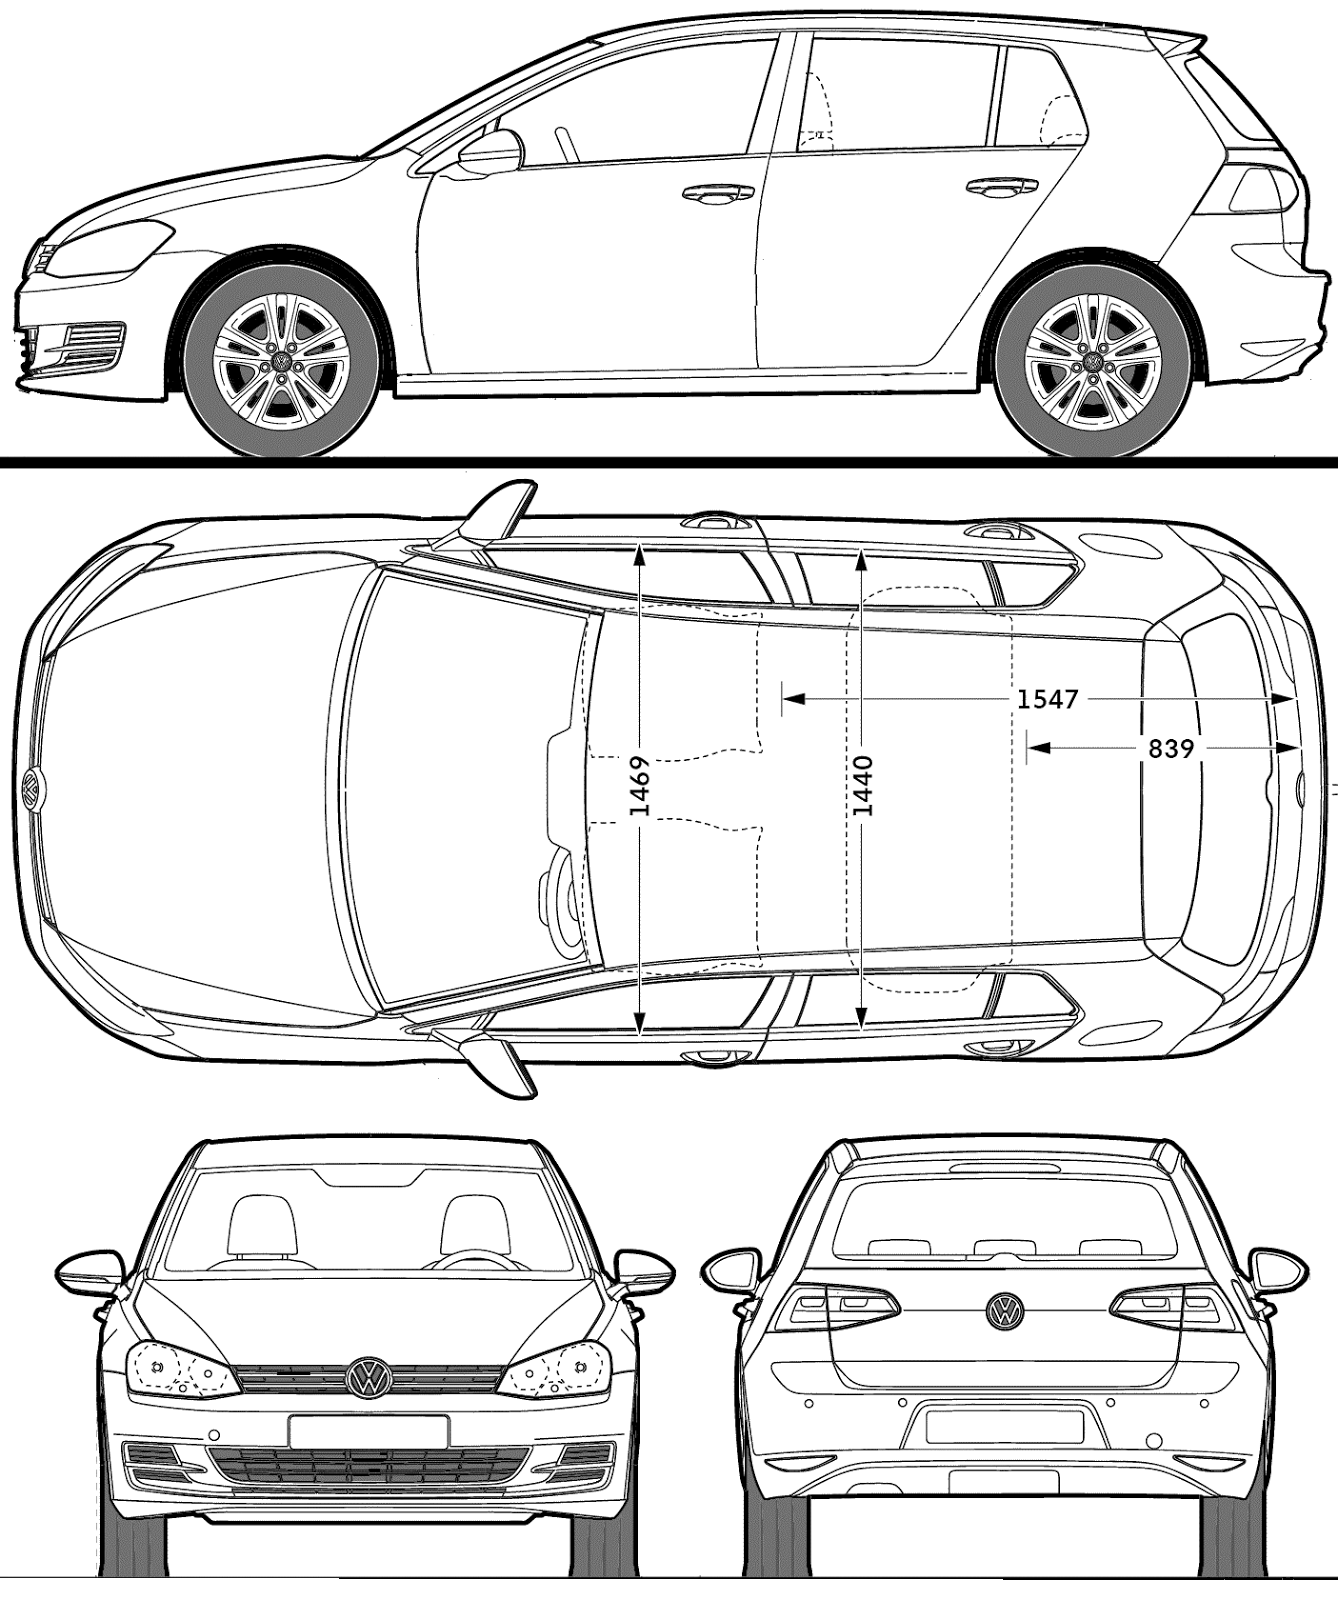 Volkswagen golf 2013 blueprint download free blueprint for 3d modeling volkswagen golf blueprint malvernweather